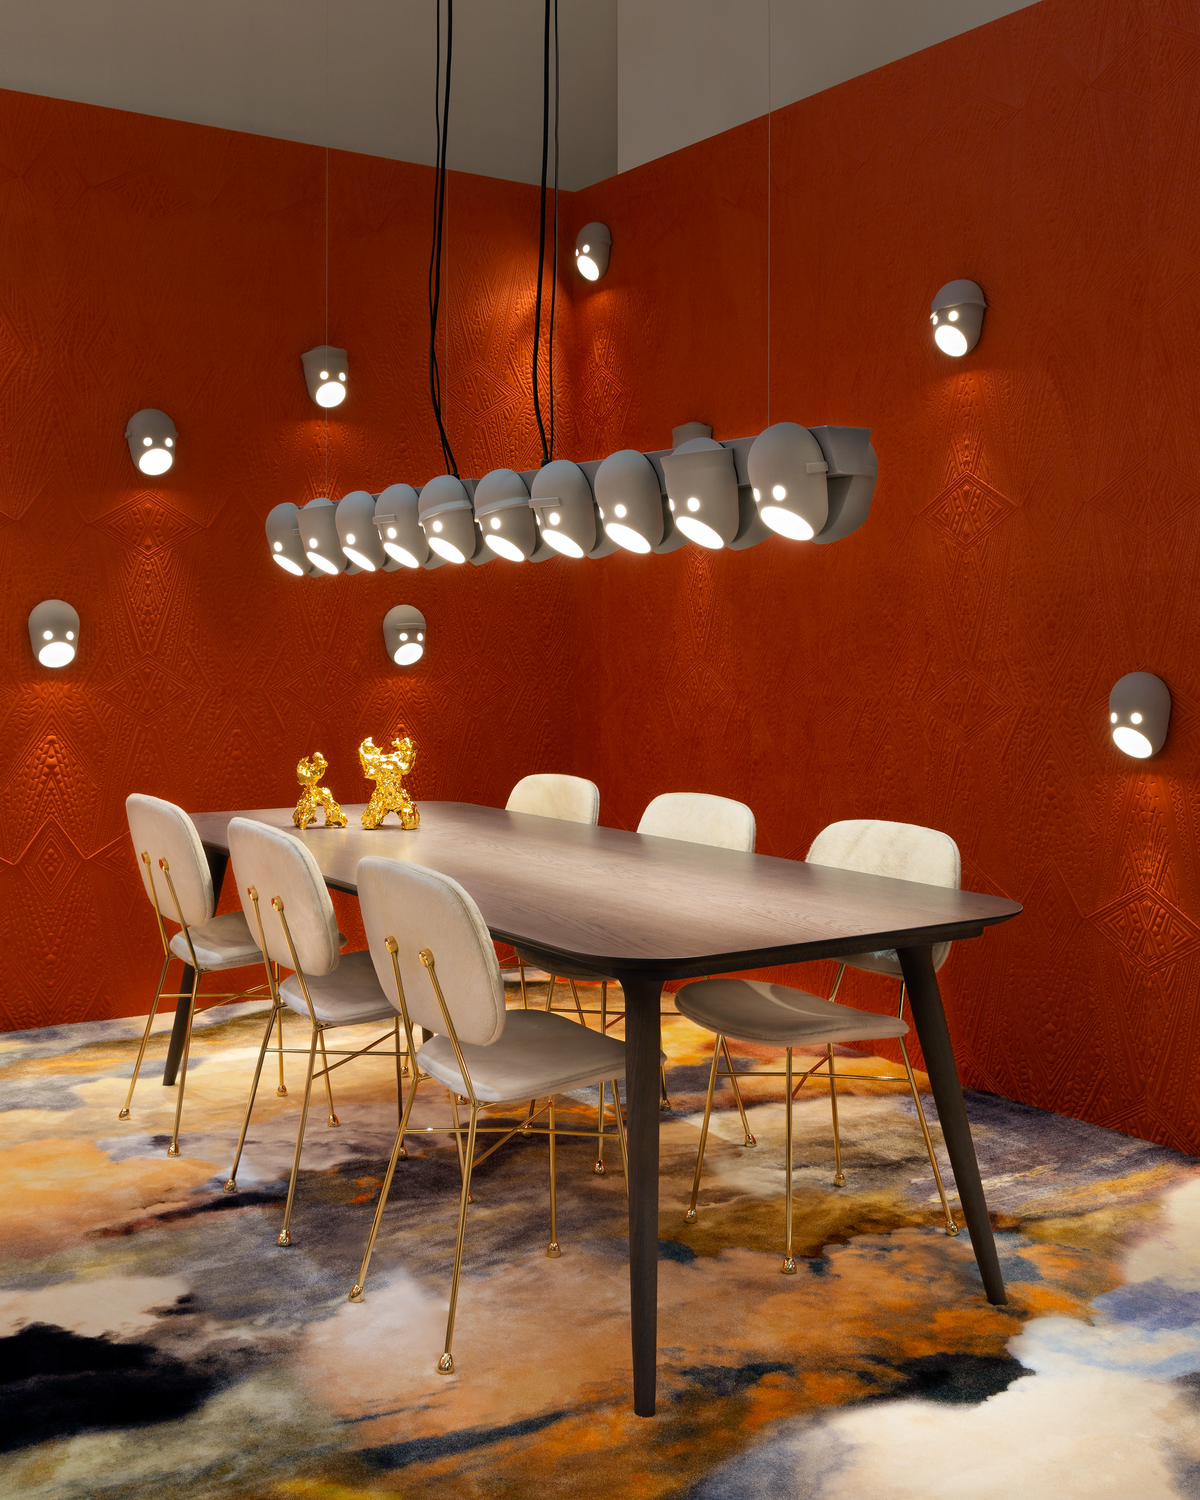 Interior Milan 2019 with The Party suspension light, The Party Wall Lamp and The Golden Chair